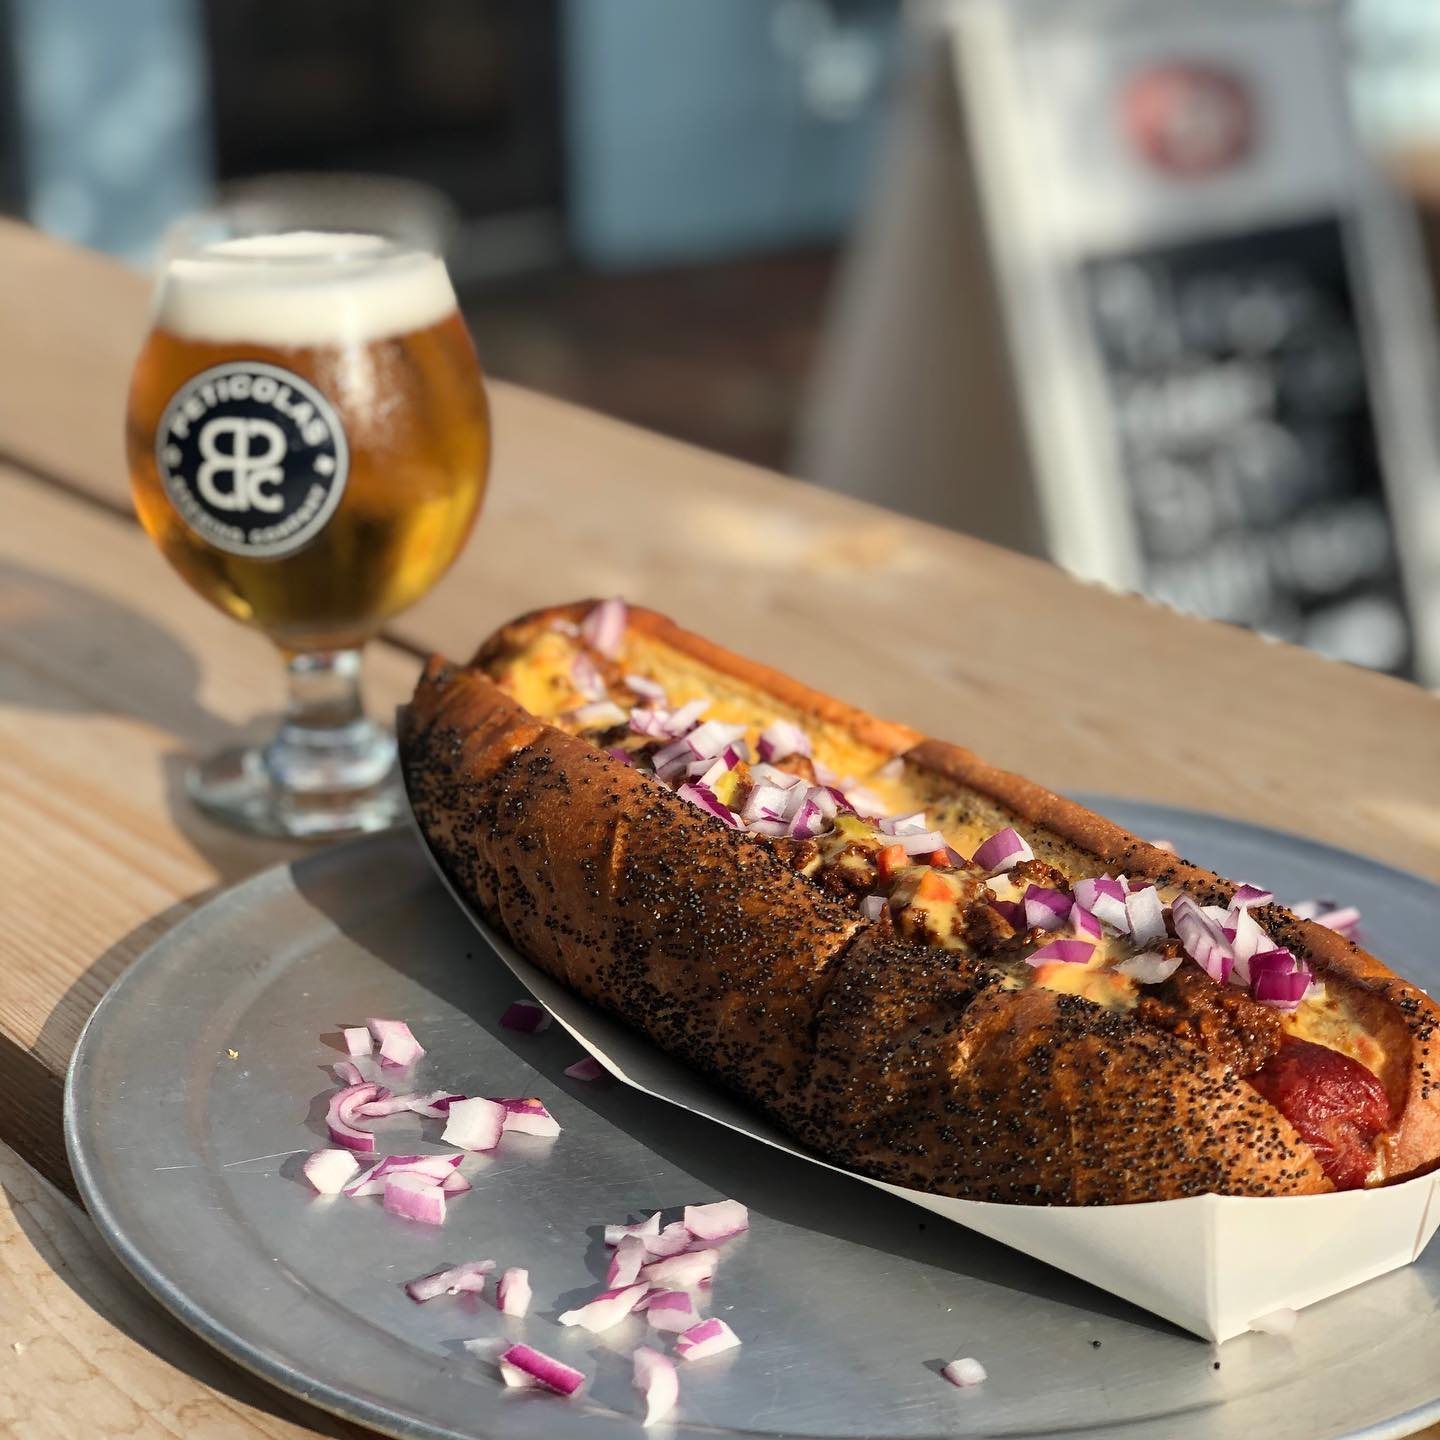 A hot dog on a pretzel bun topped with cheese and red onions. A chalice of light colored beer sits in the background.